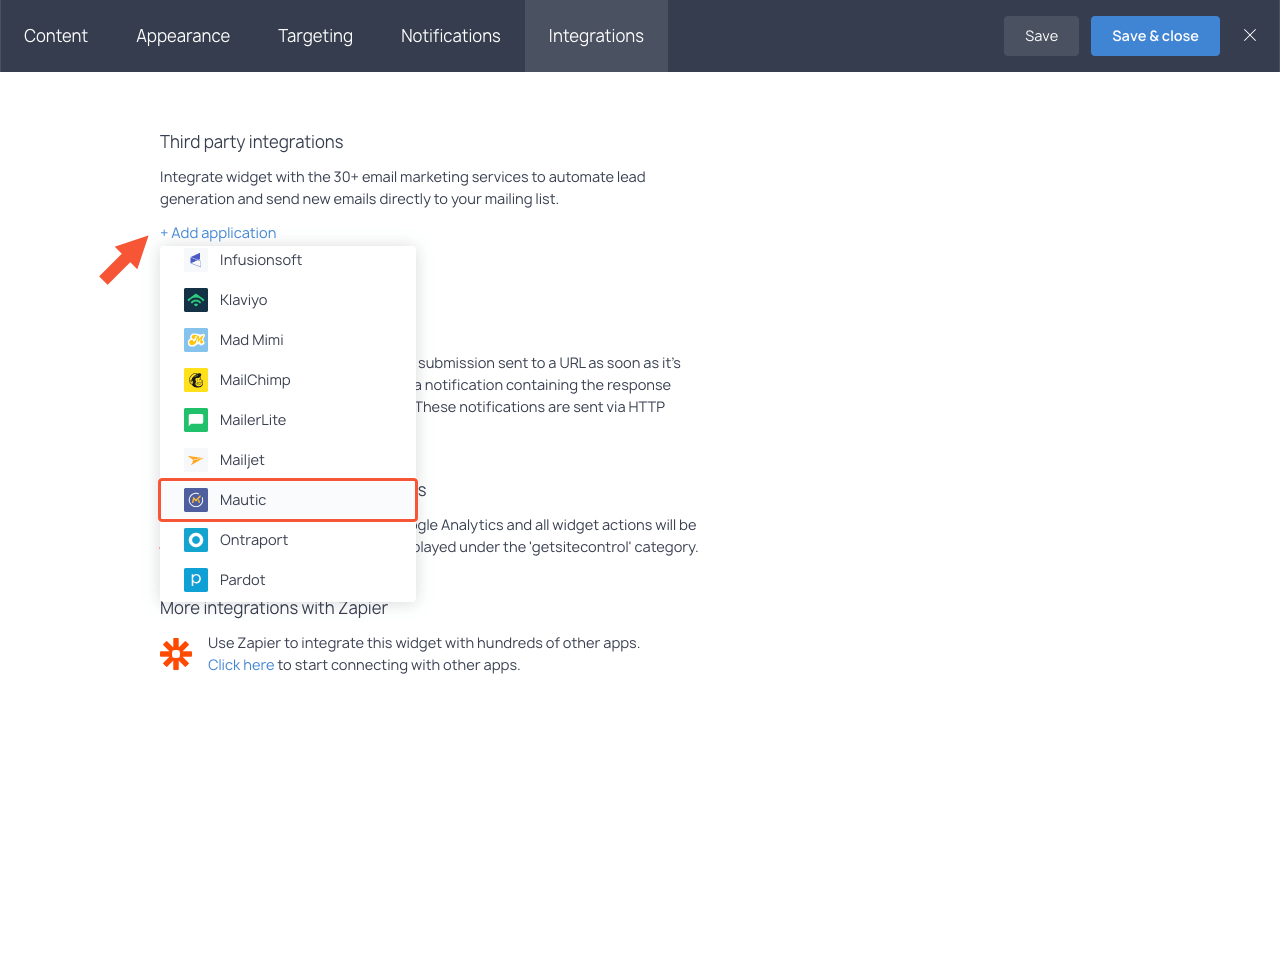 Integrations section with the highlighted Mautic item in the dropdown list